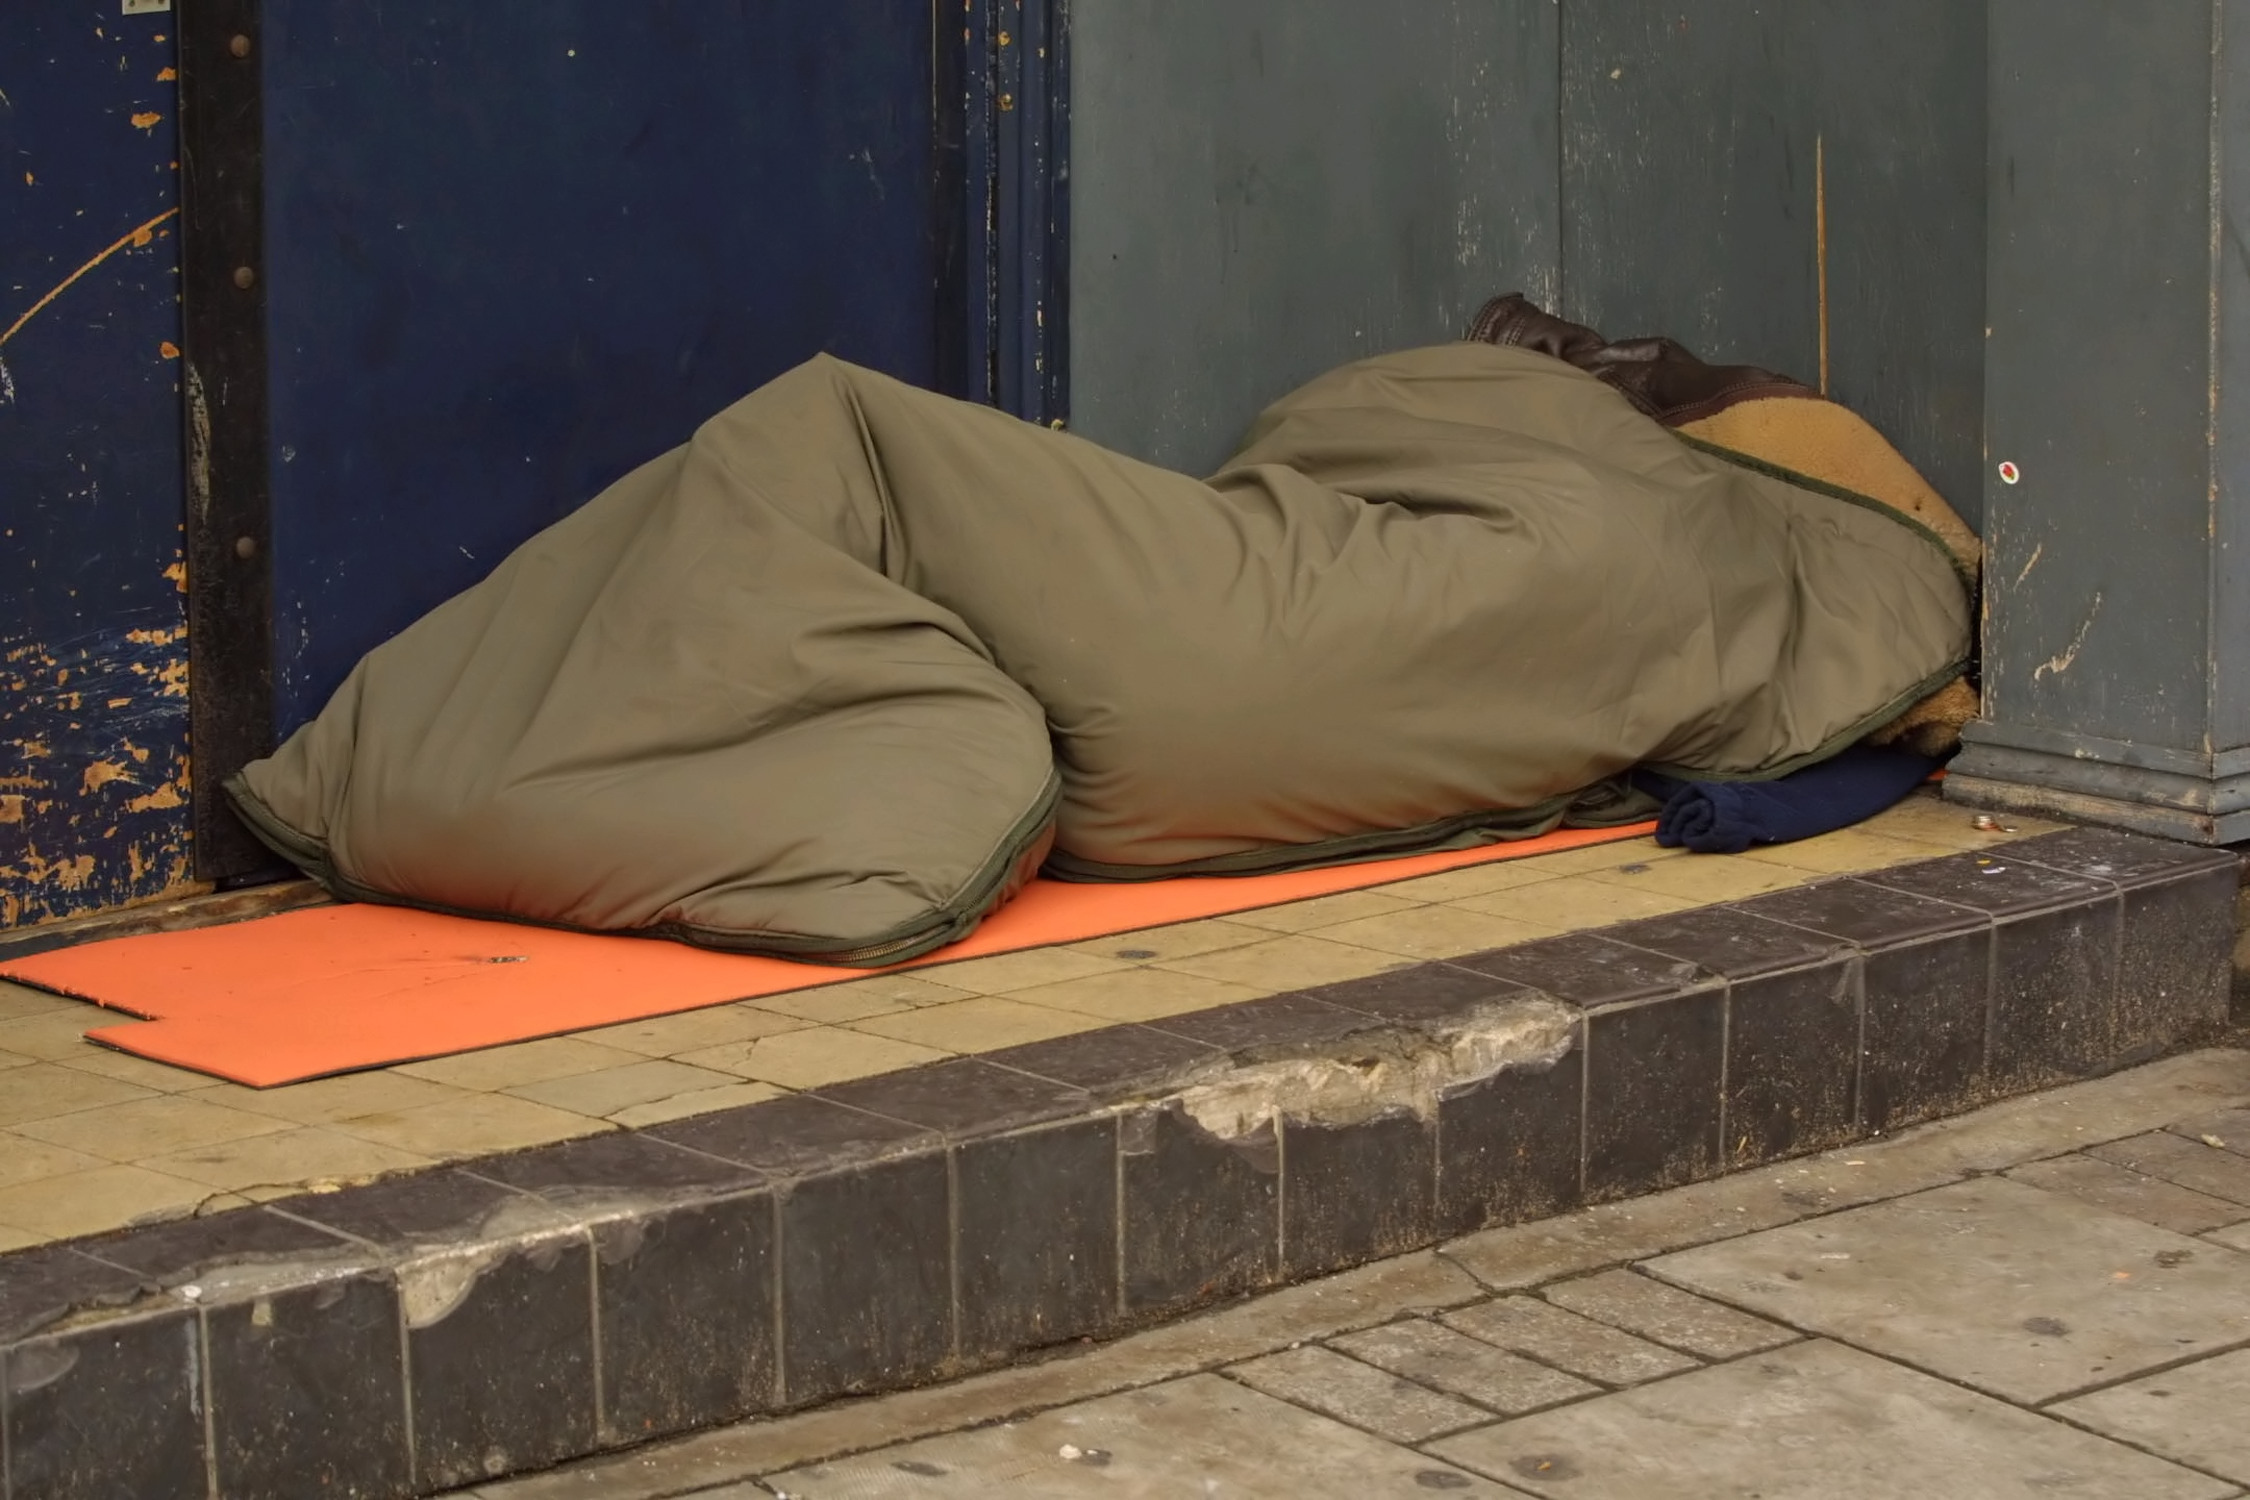 Rough sleeper in doorway